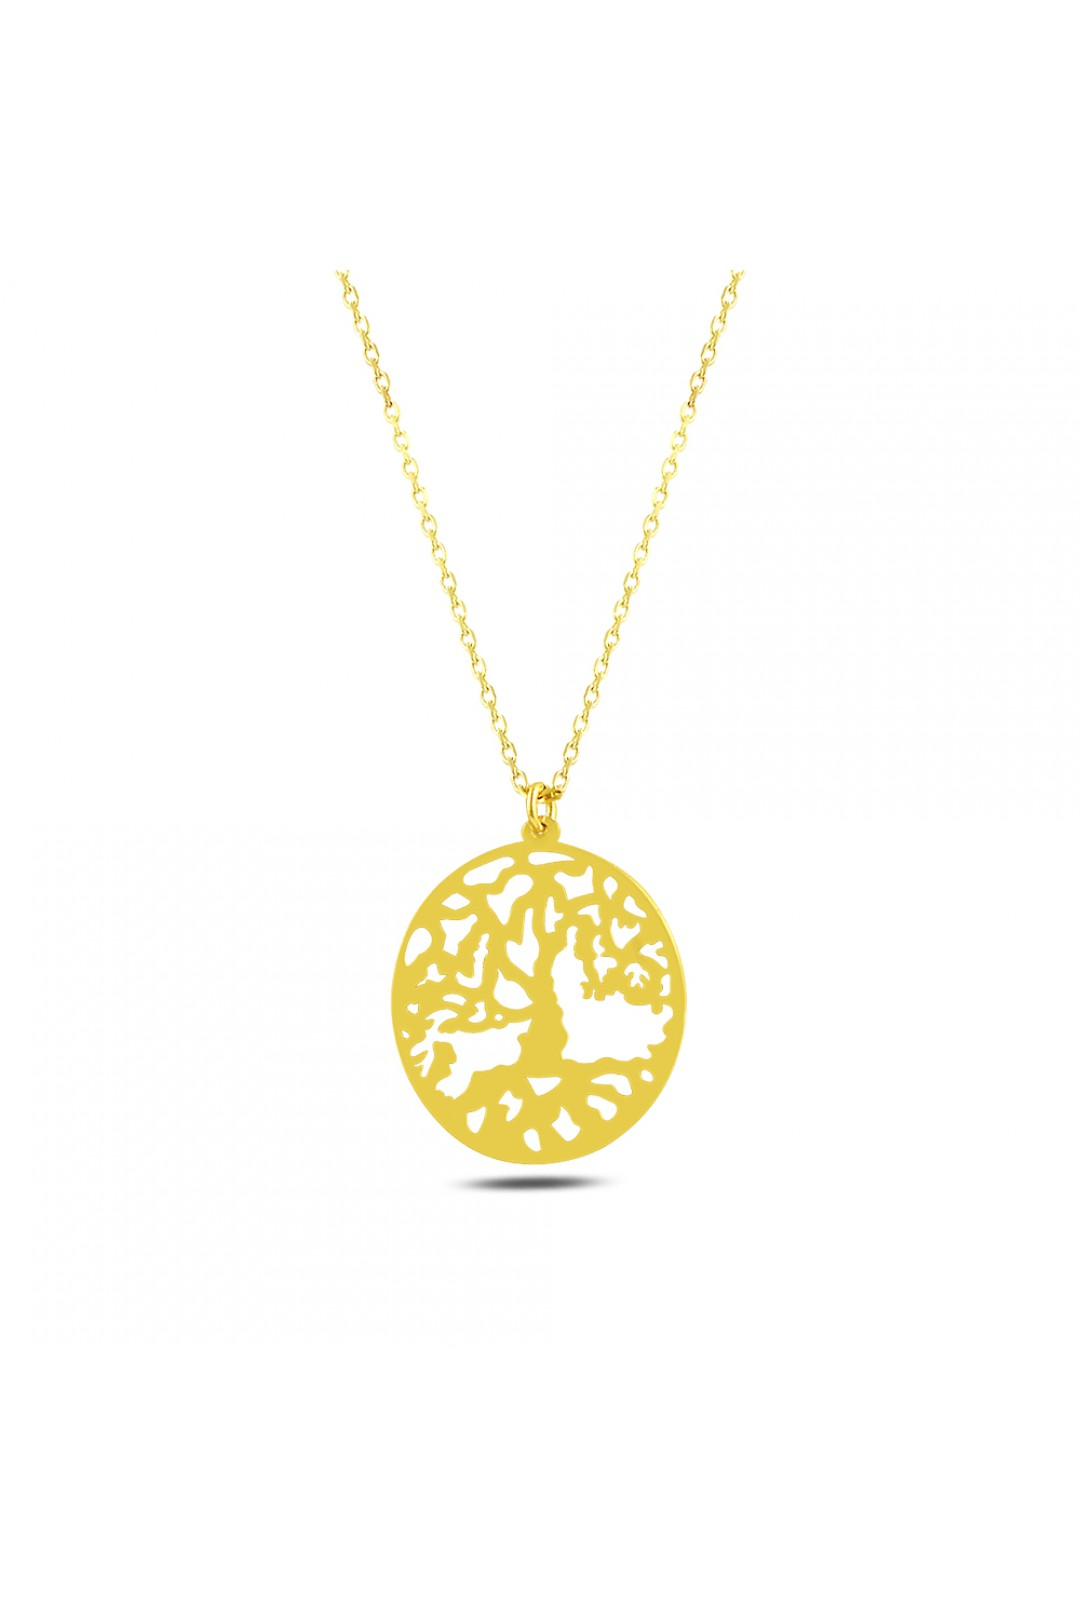 ROOTED TREE NECKLACE